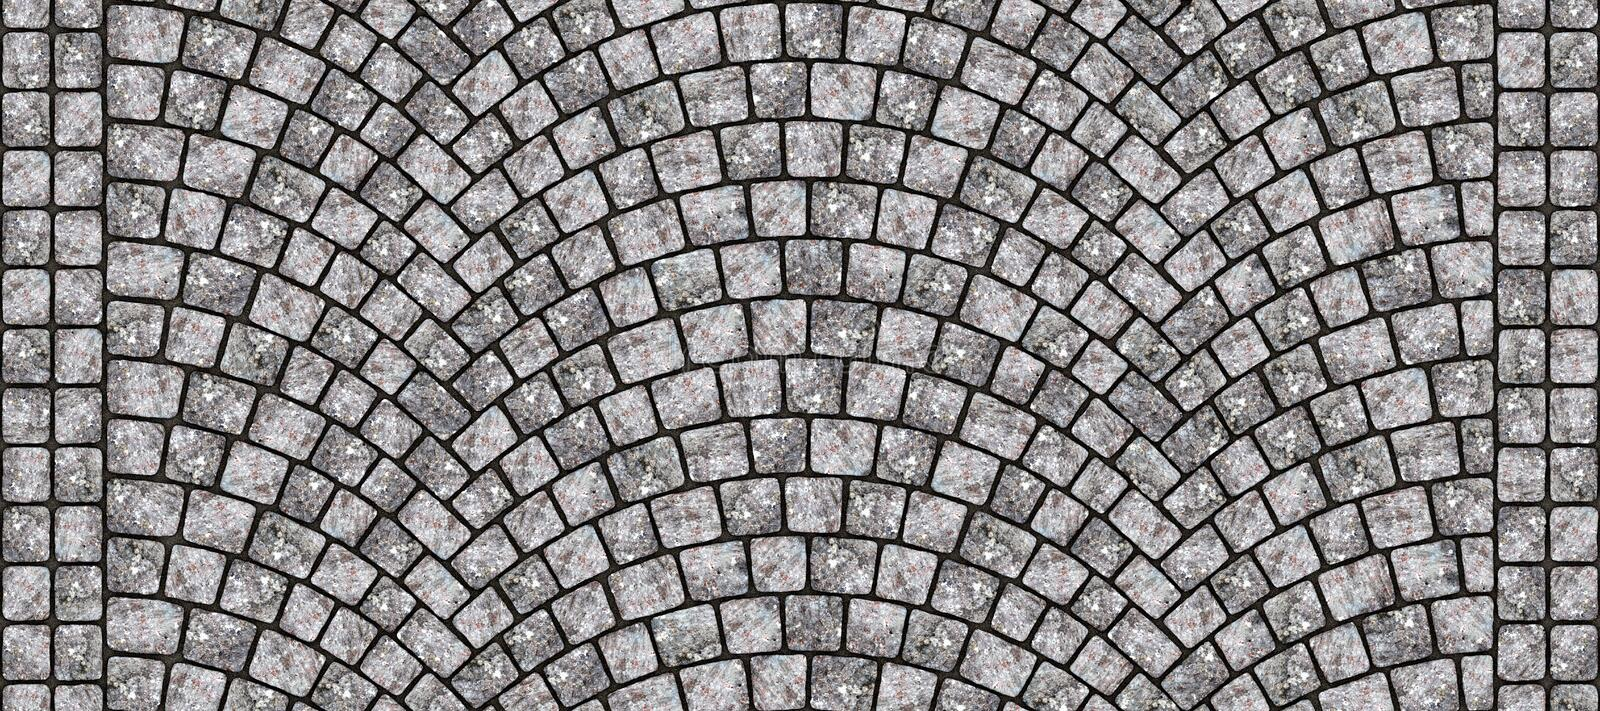 Road curved cobblestone texture 123. Cobblestone arched pavement road with edge courses at the sidewalk. Seamless tileable repeating 3D rendering texture vector illustration